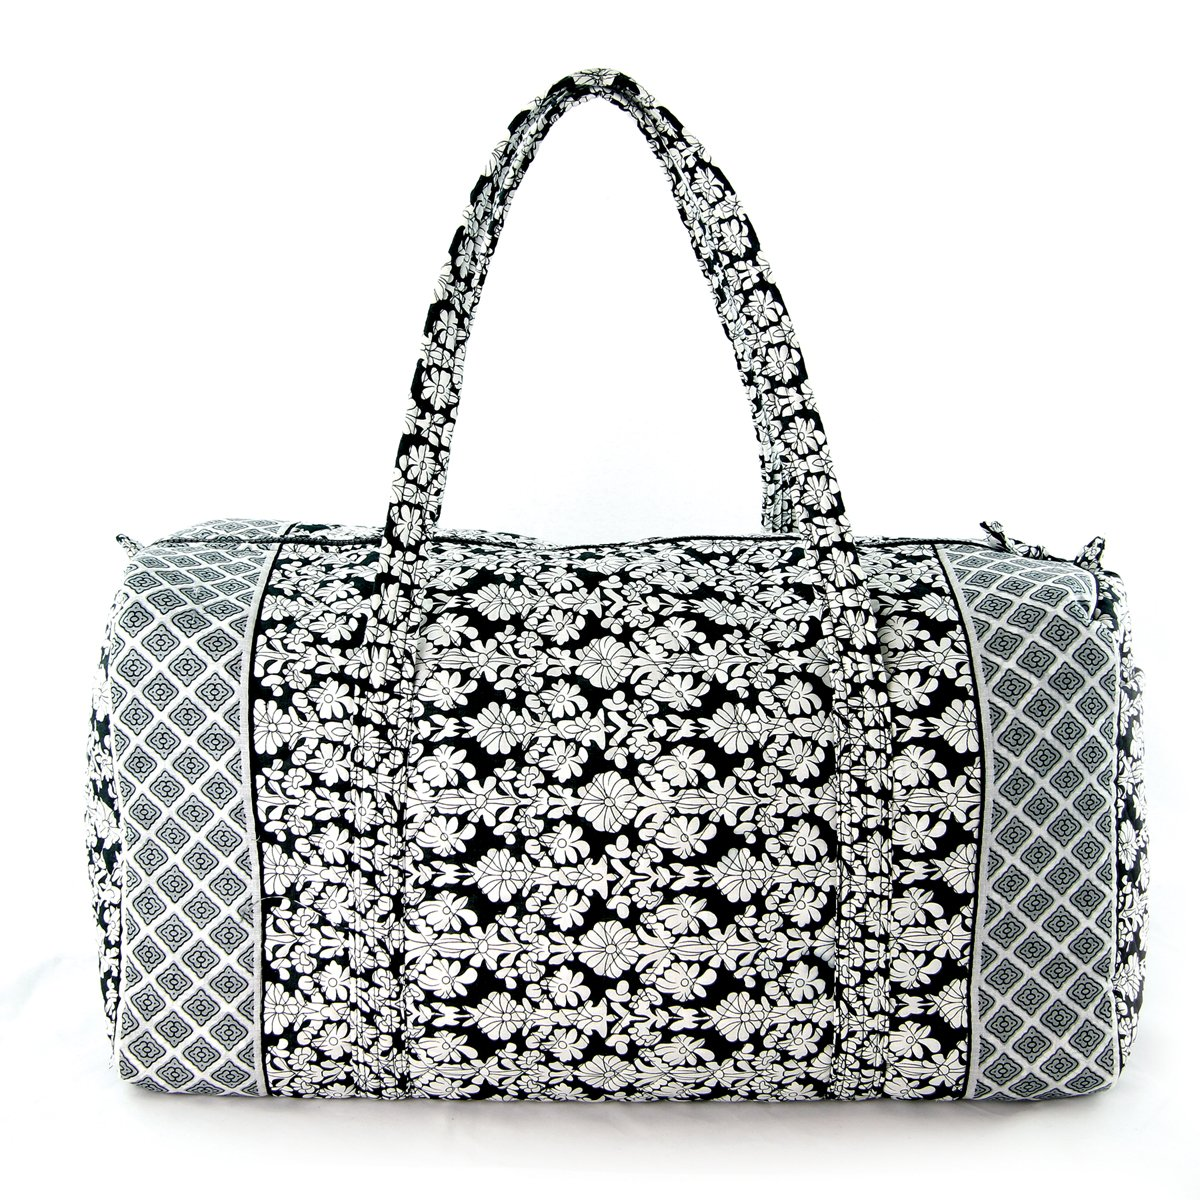 Floral Quilted Cotton Duffle Bag Black/White by WonderMolly (Image #1)